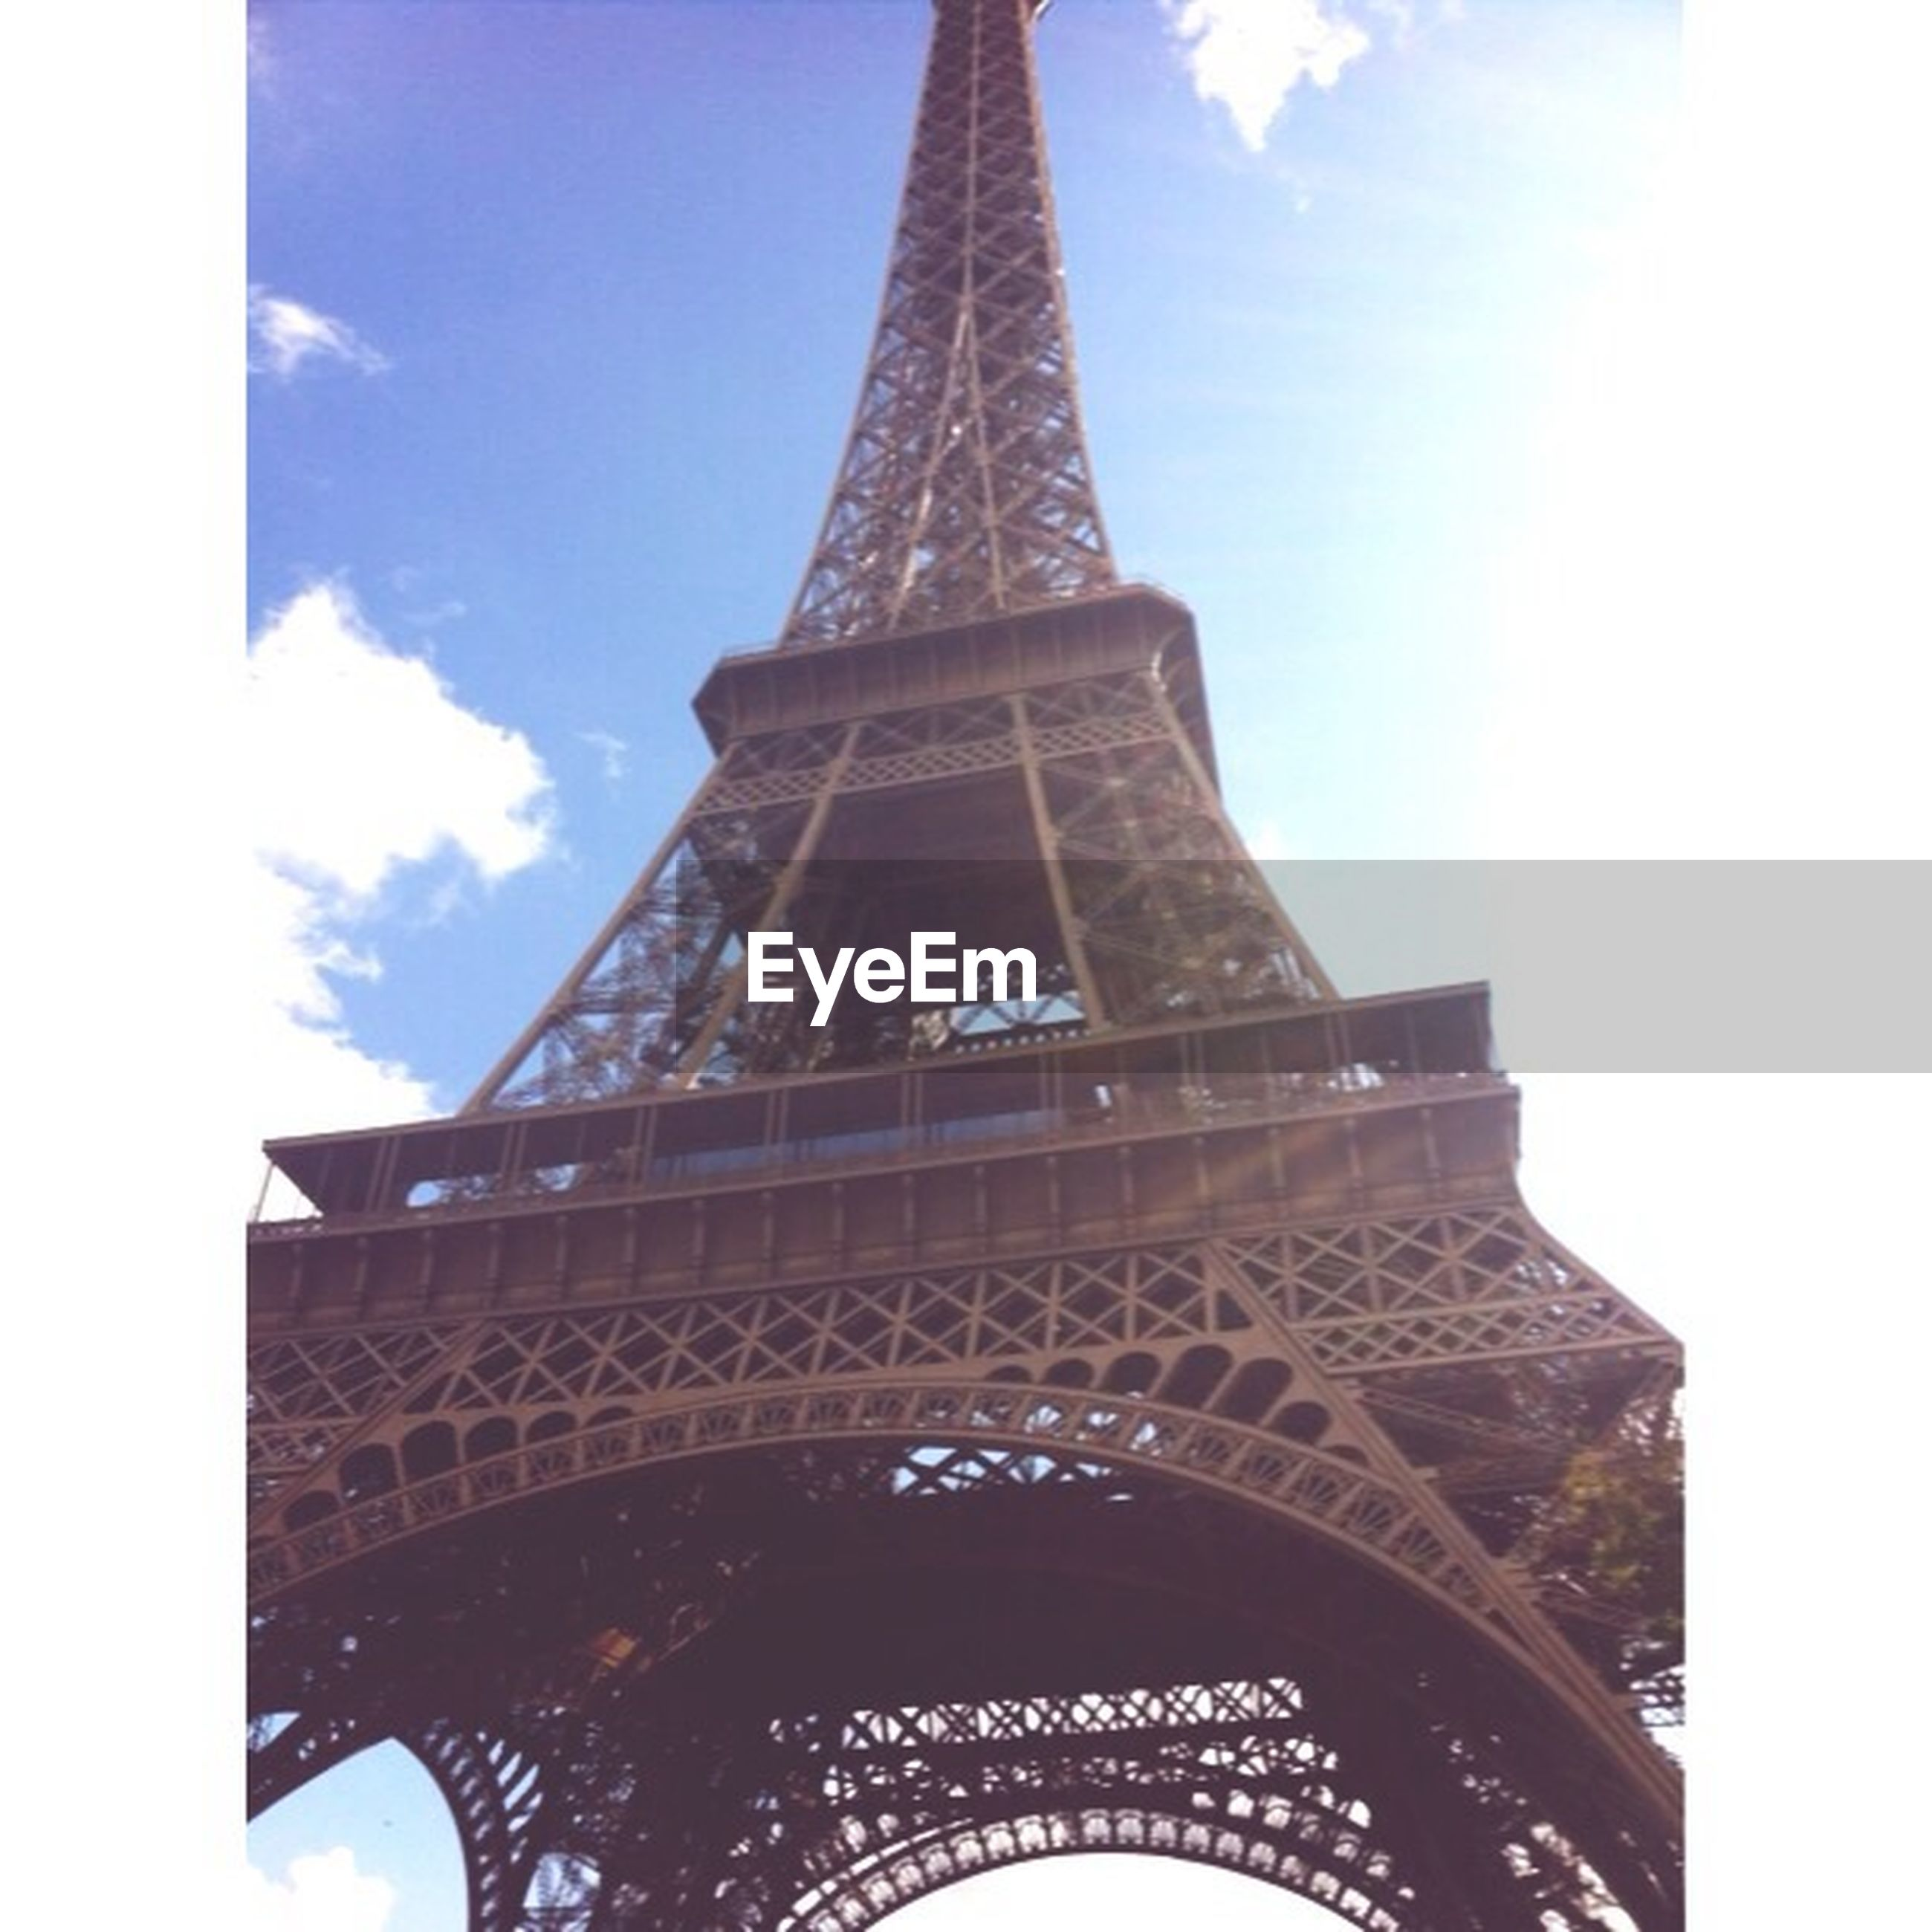 architecture, eiffel tower, built structure, low angle view, famous place, international landmark, tower, tall - high, travel destinations, capital cities, tourism, culture, sky, travel, metal, architectural feature, history, city, building exterior, day